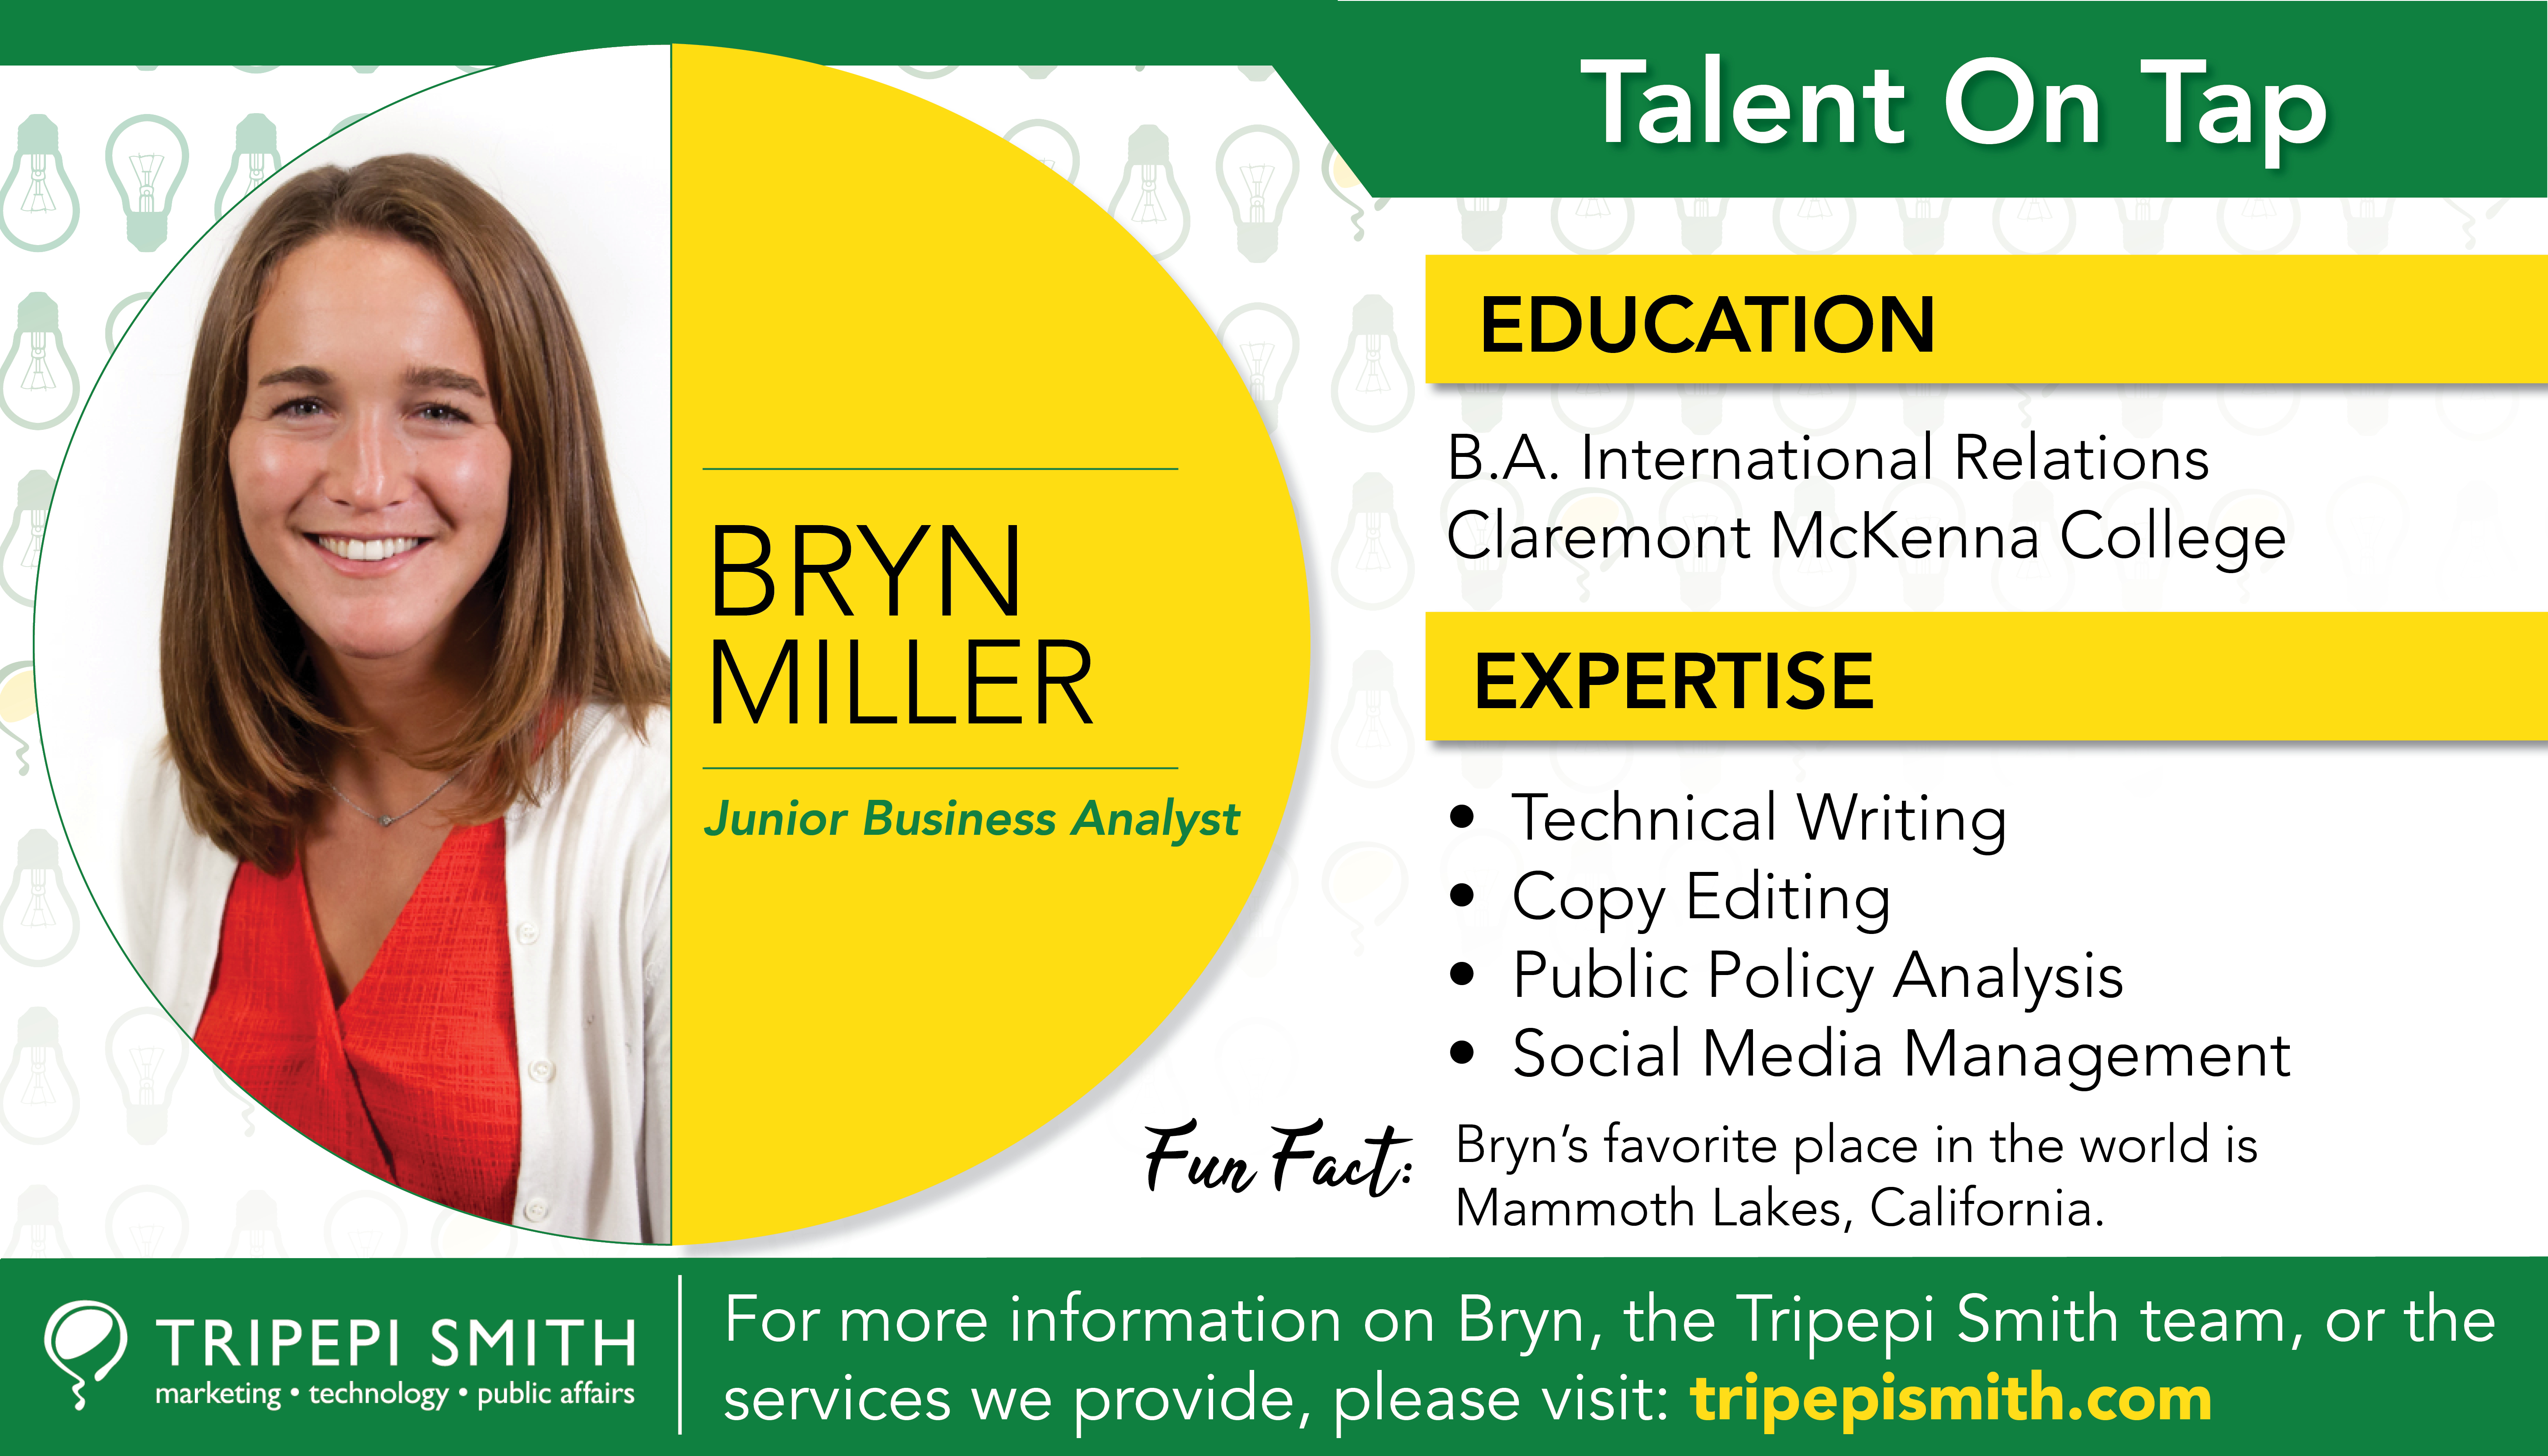 Bryn Miller Talent on Tap